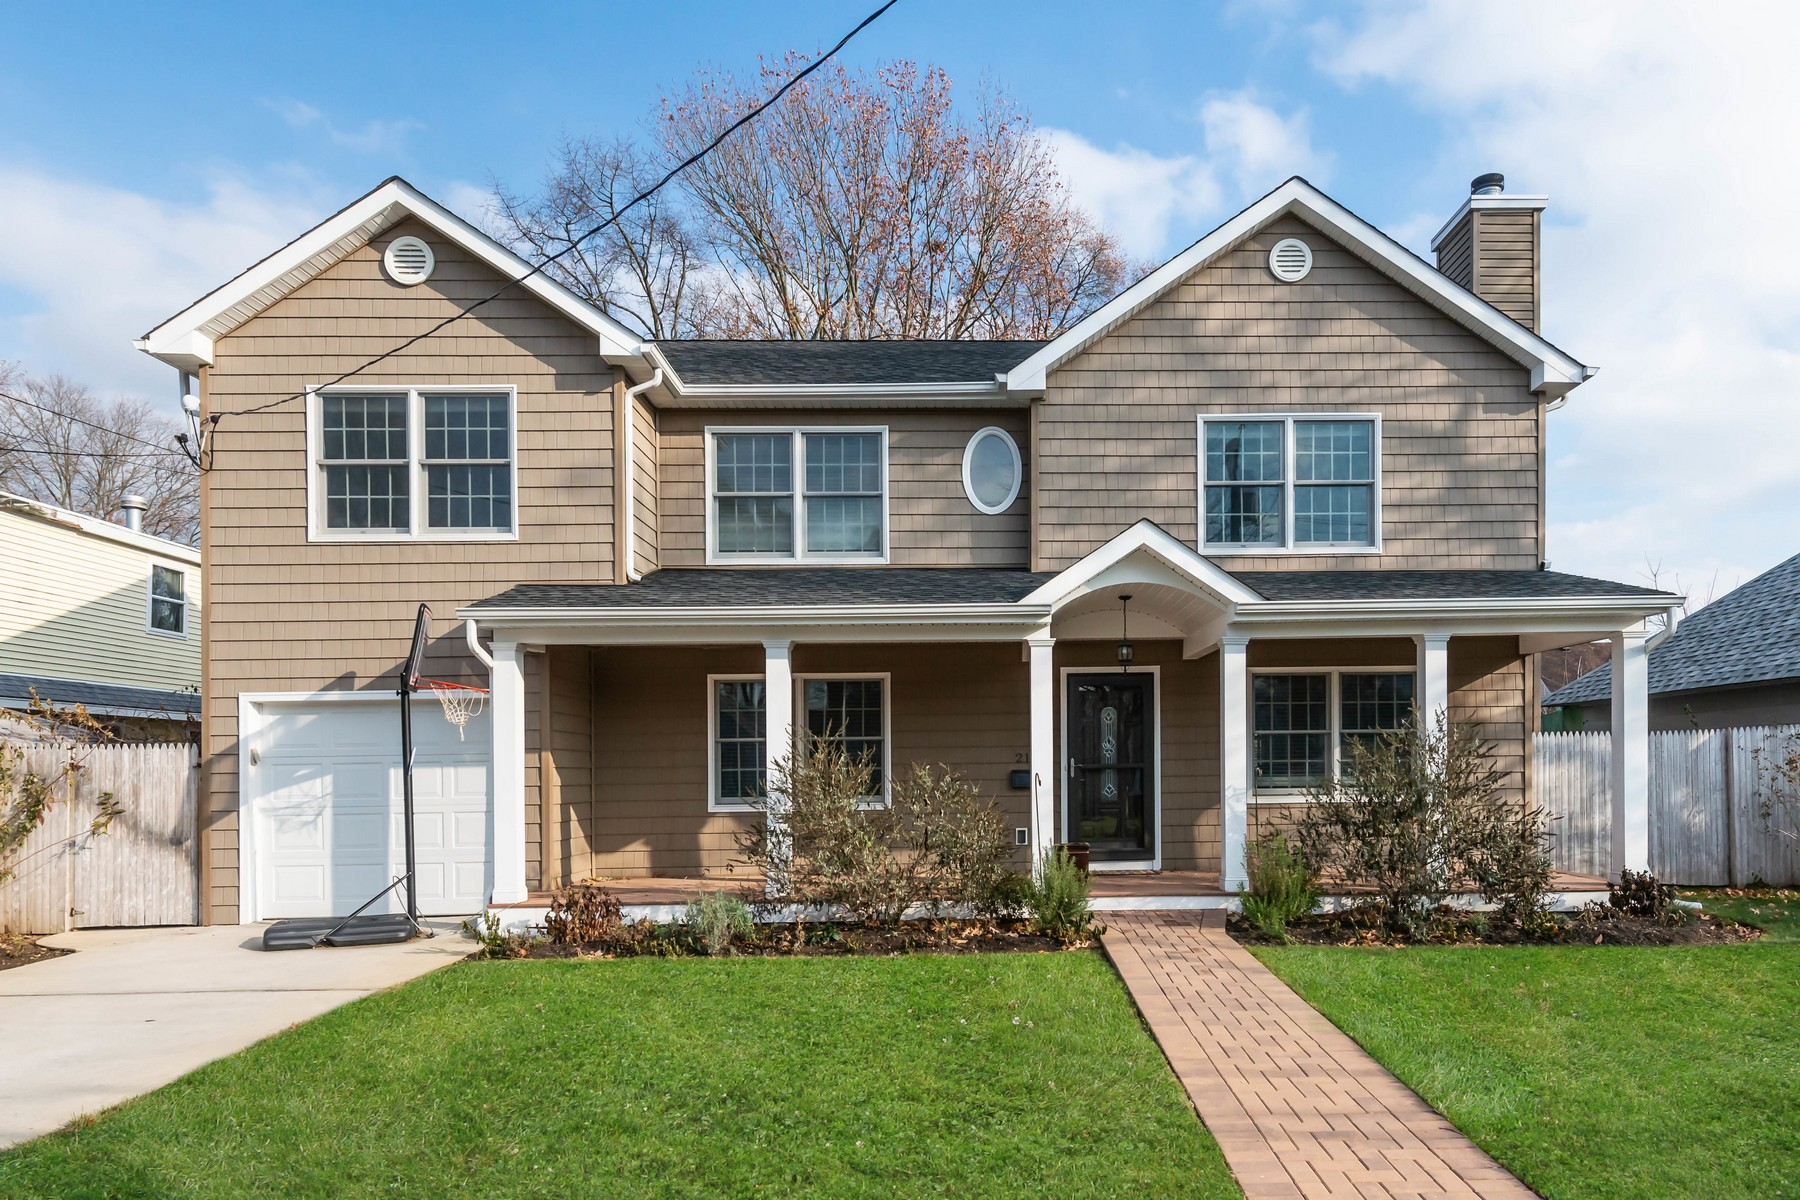 Single Family Homes for Active at Wantagh 2195 Larch St Wantagh, New York 11793 United States